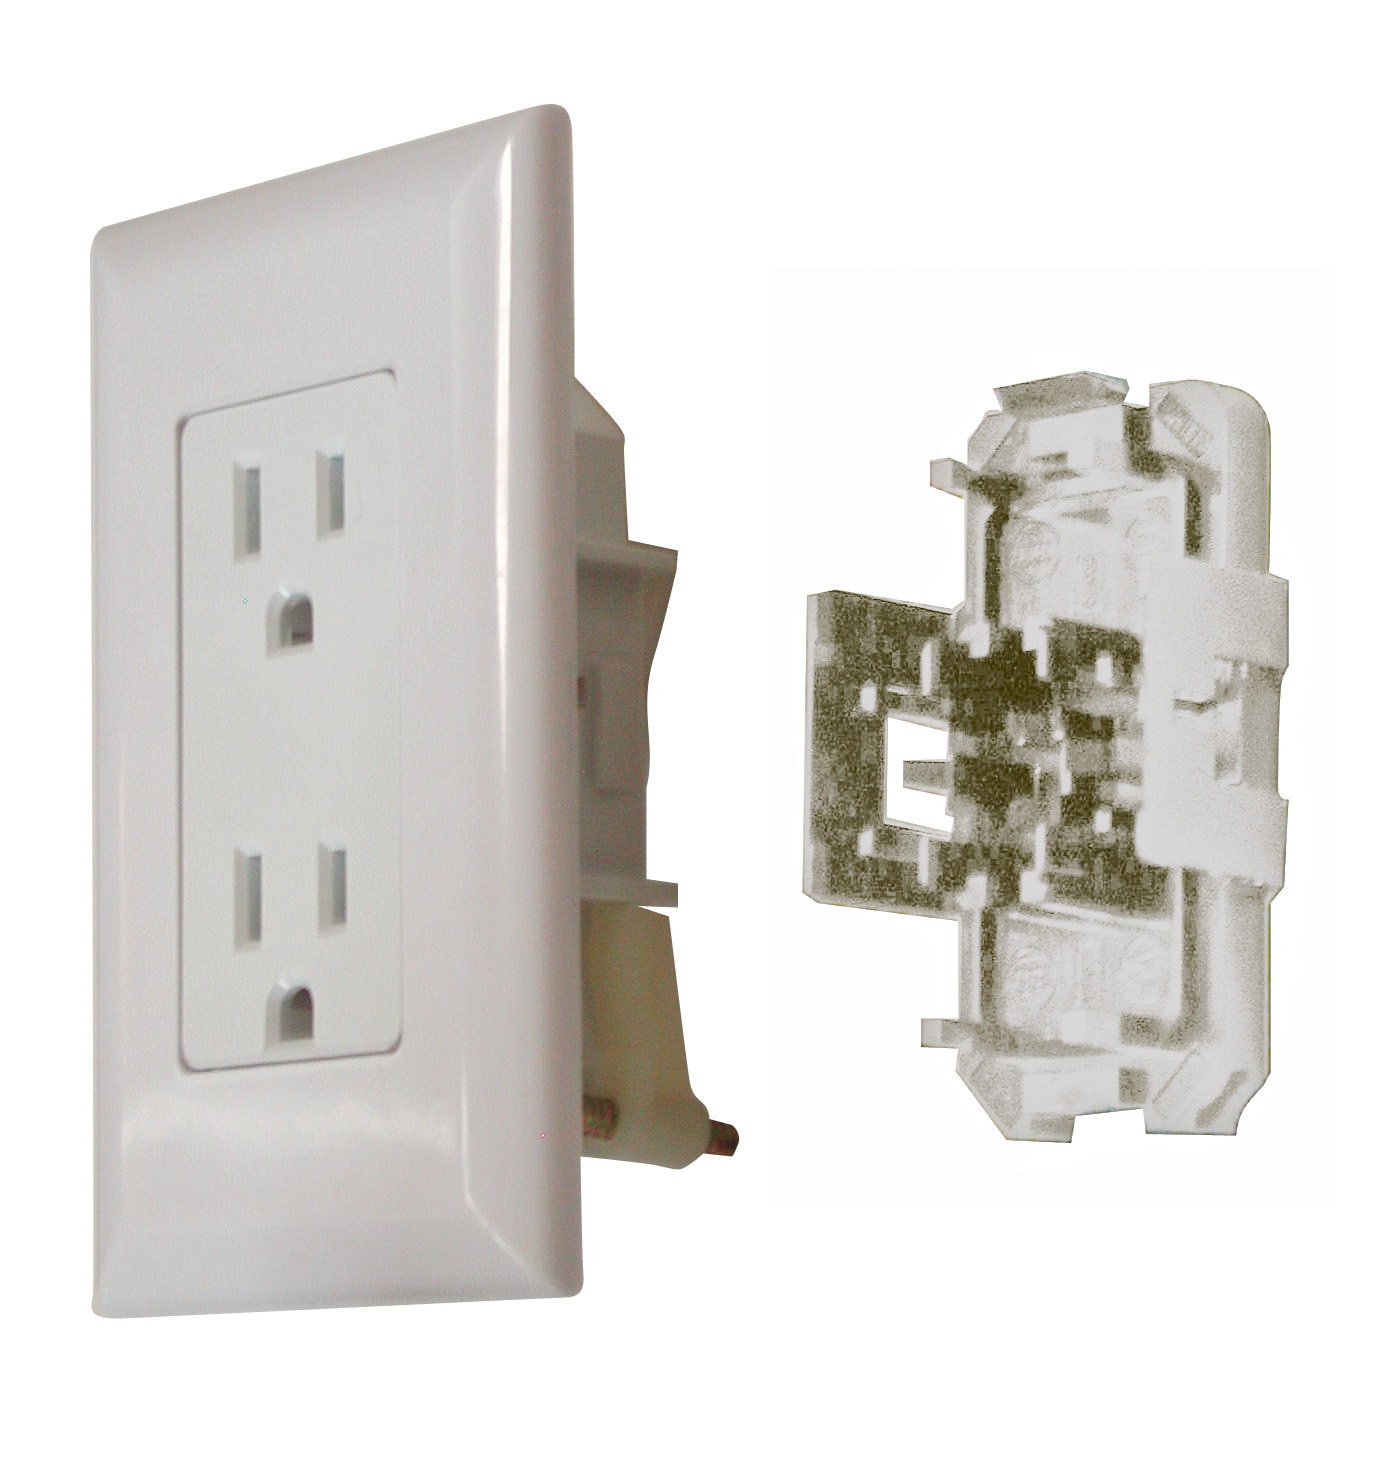 20 Amp Decor Receptacle with Cover - White WDR20WT